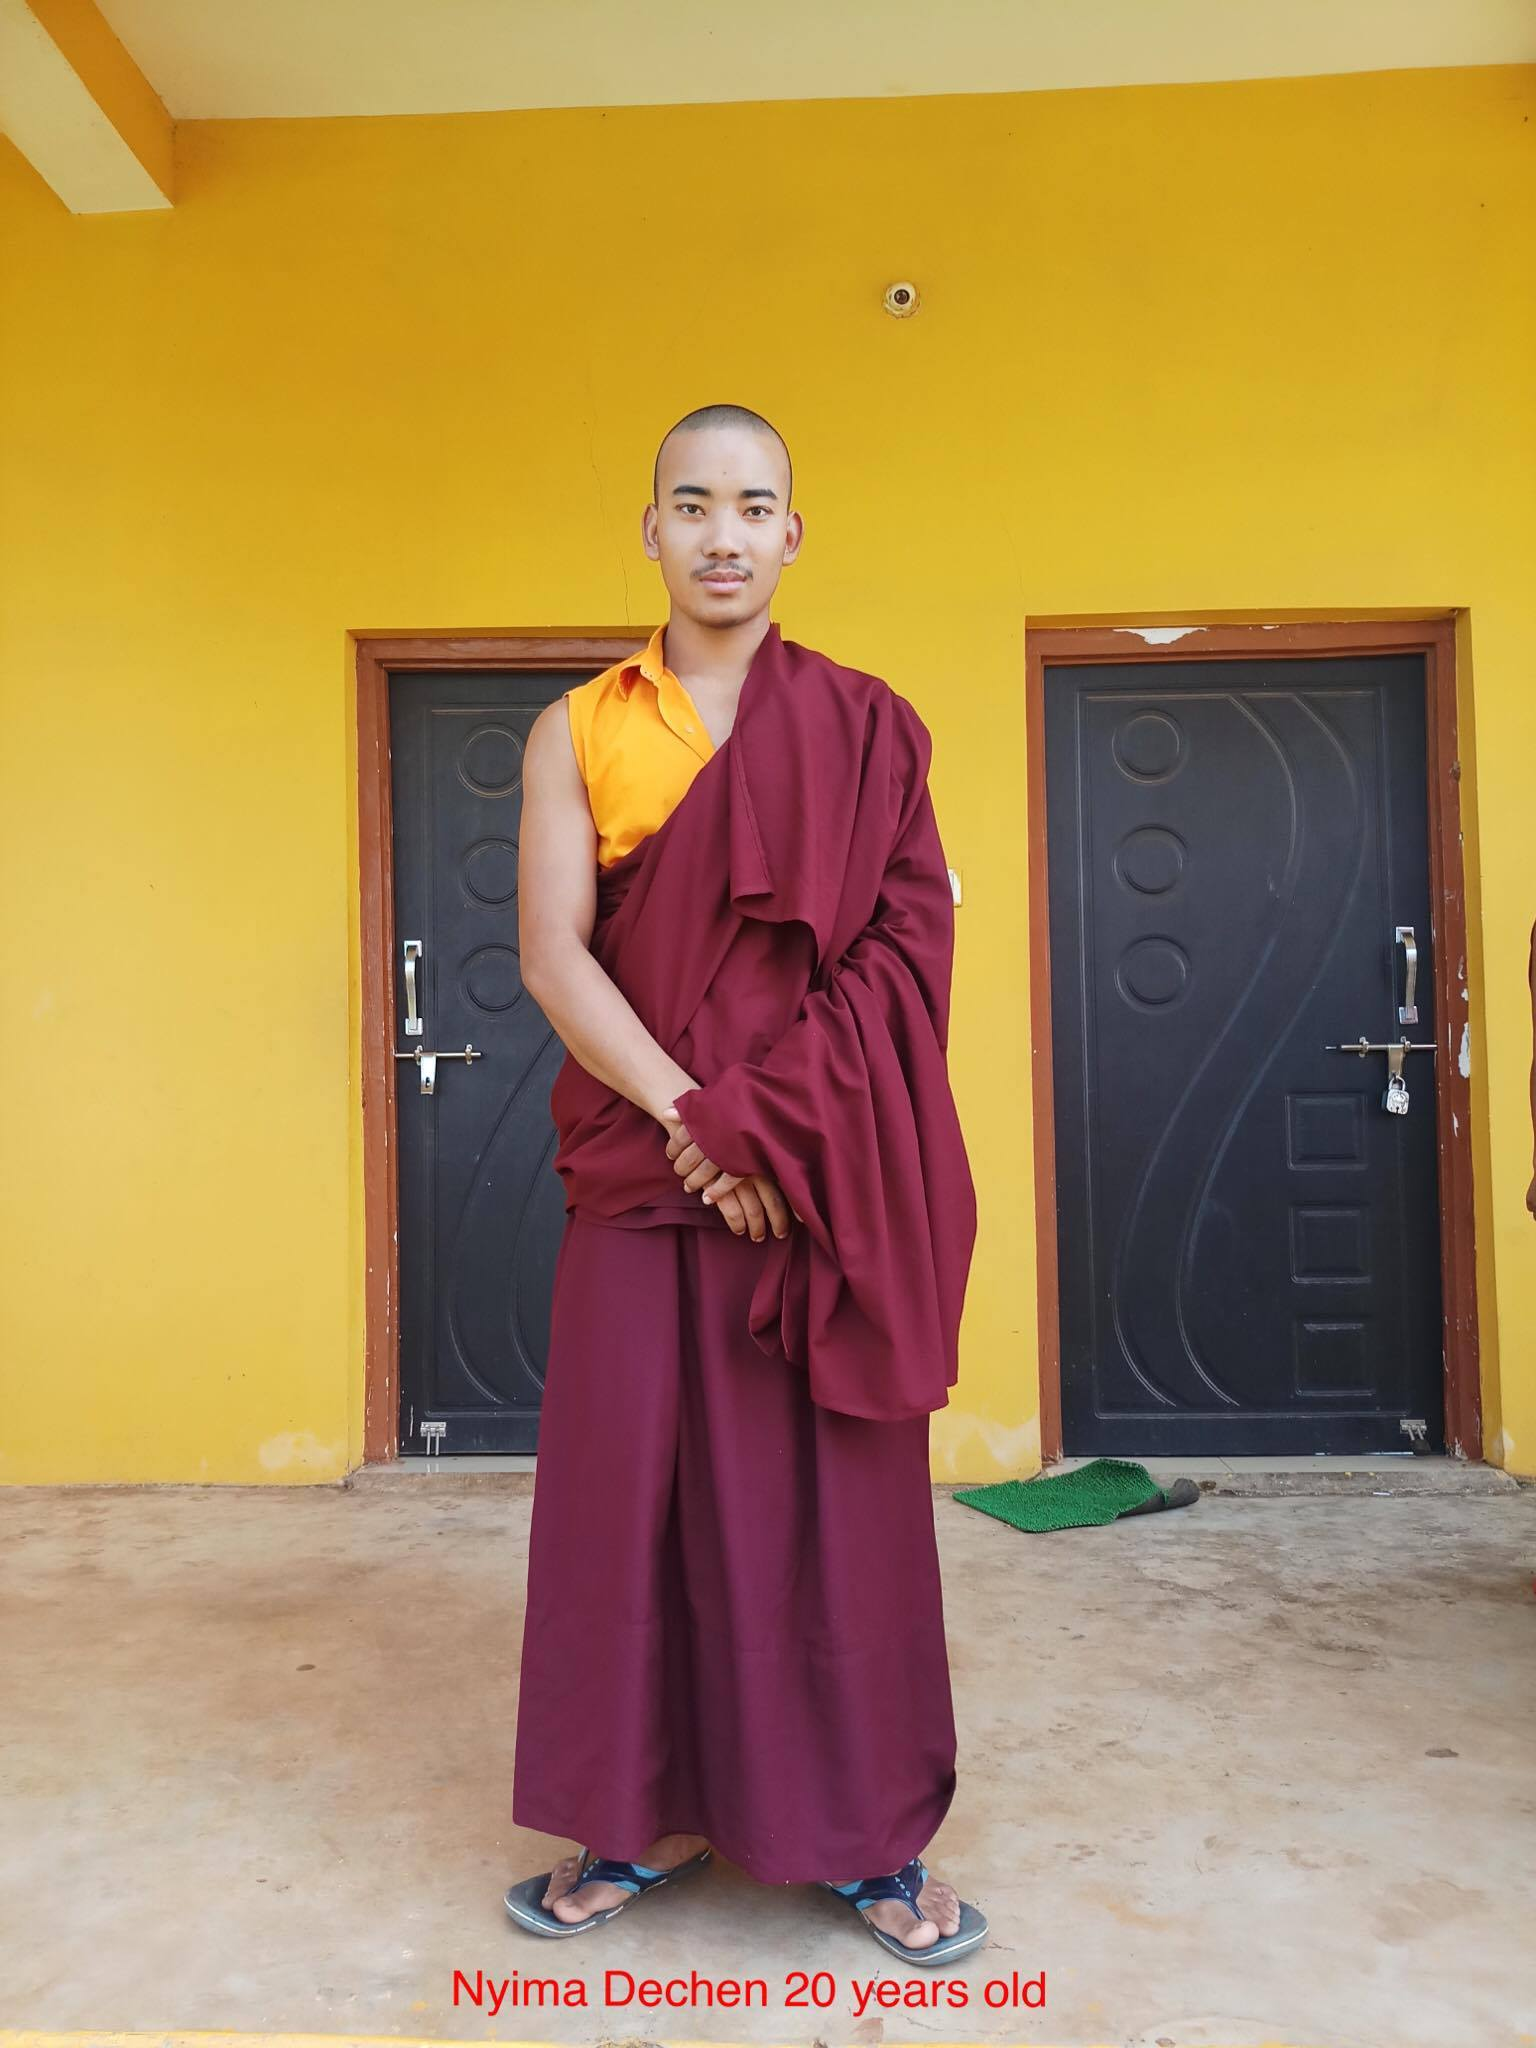 Monks_Nyima_Dechen_20yrs_old.jpg